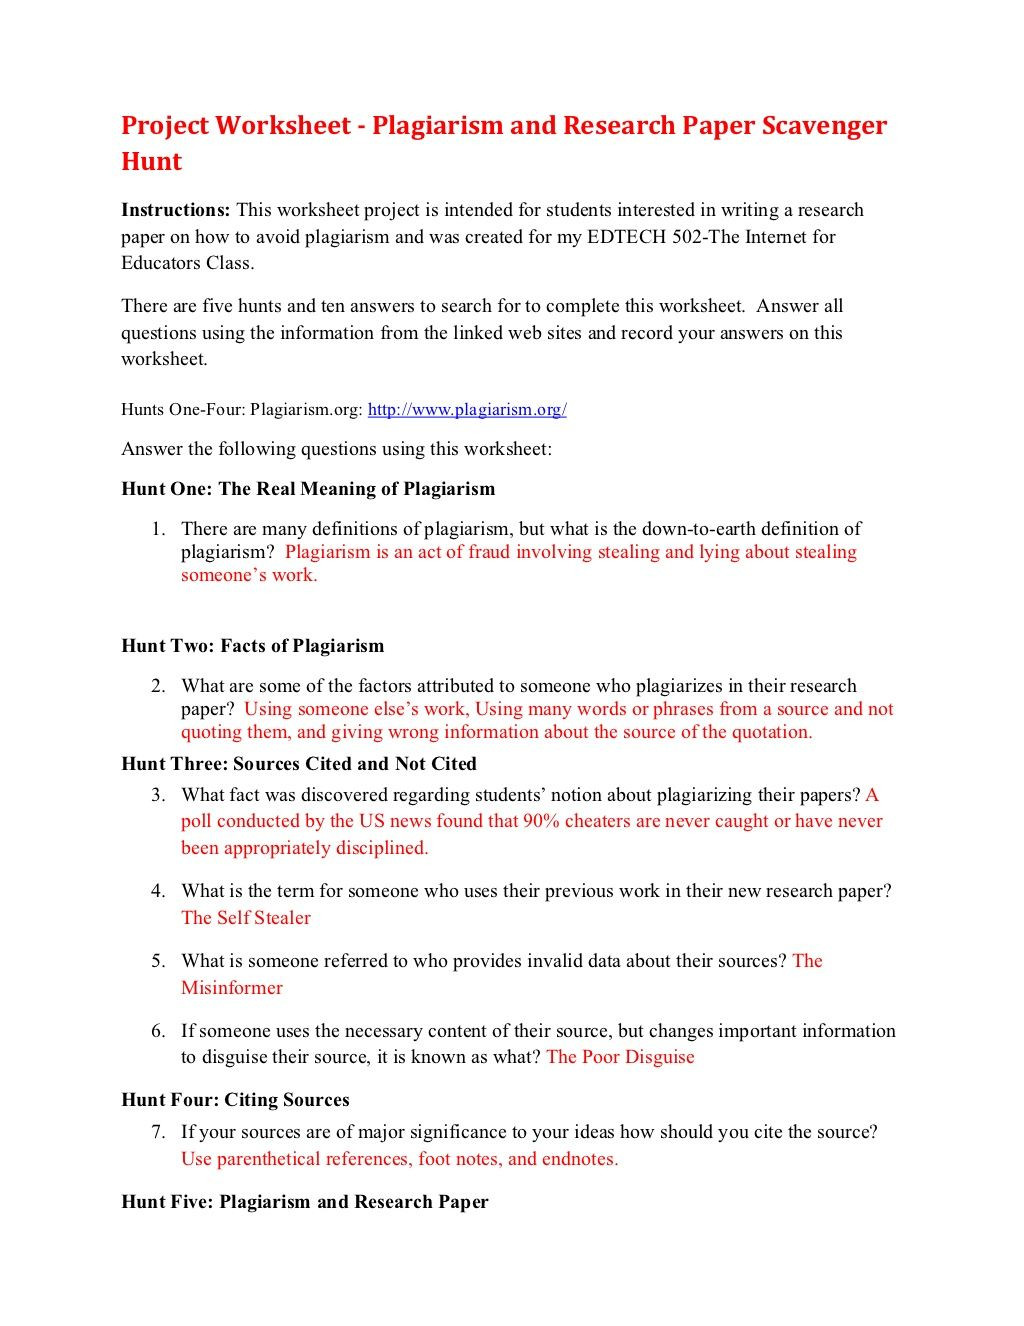 Plagiarism Worksheet High School Plagiarism Scavenger Hunt by Degesc Via Slideshare